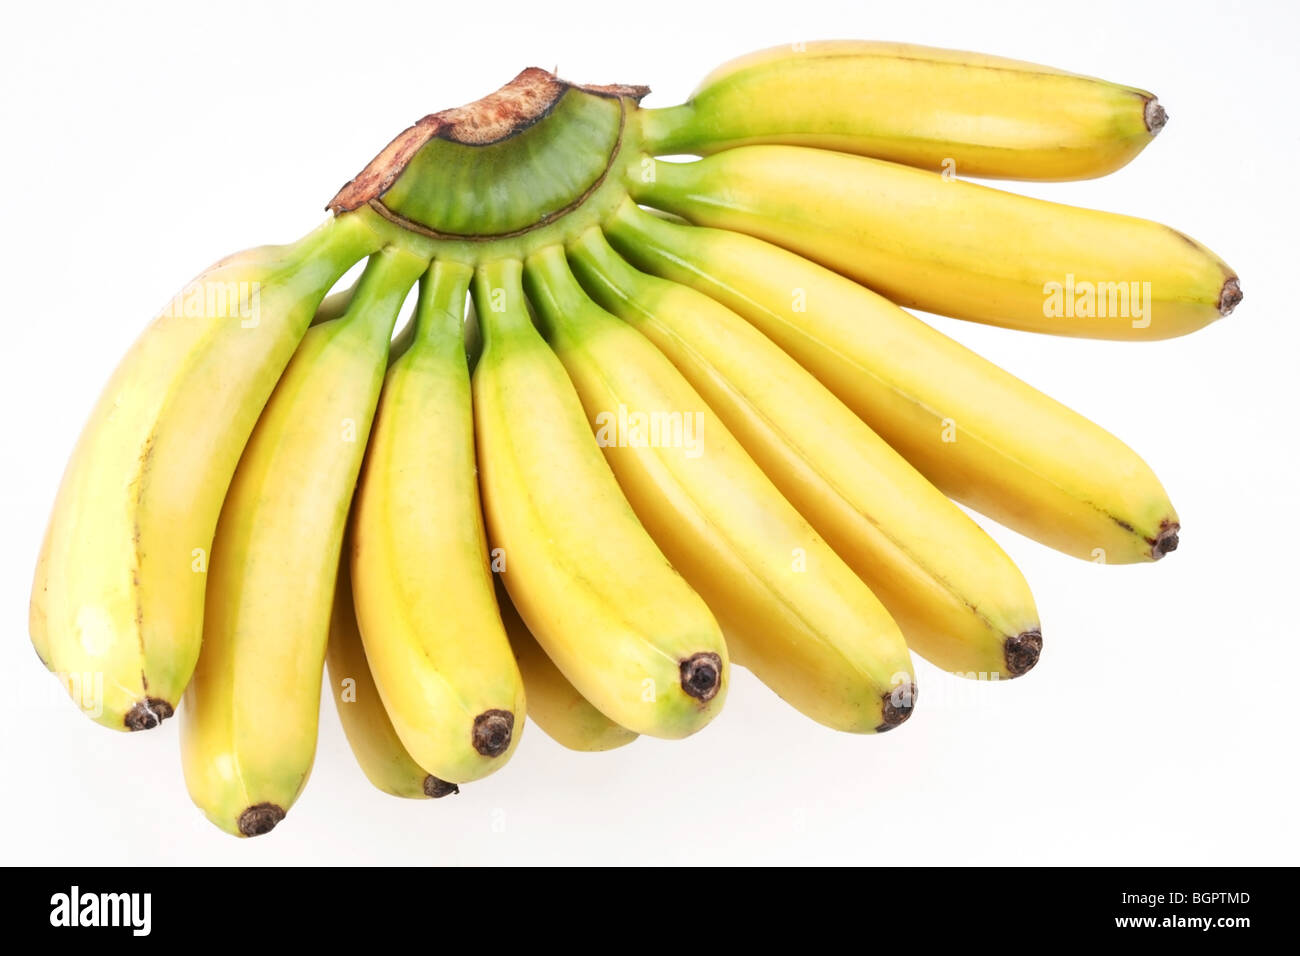 Bunch of bananas isolated on white background - Stock Image